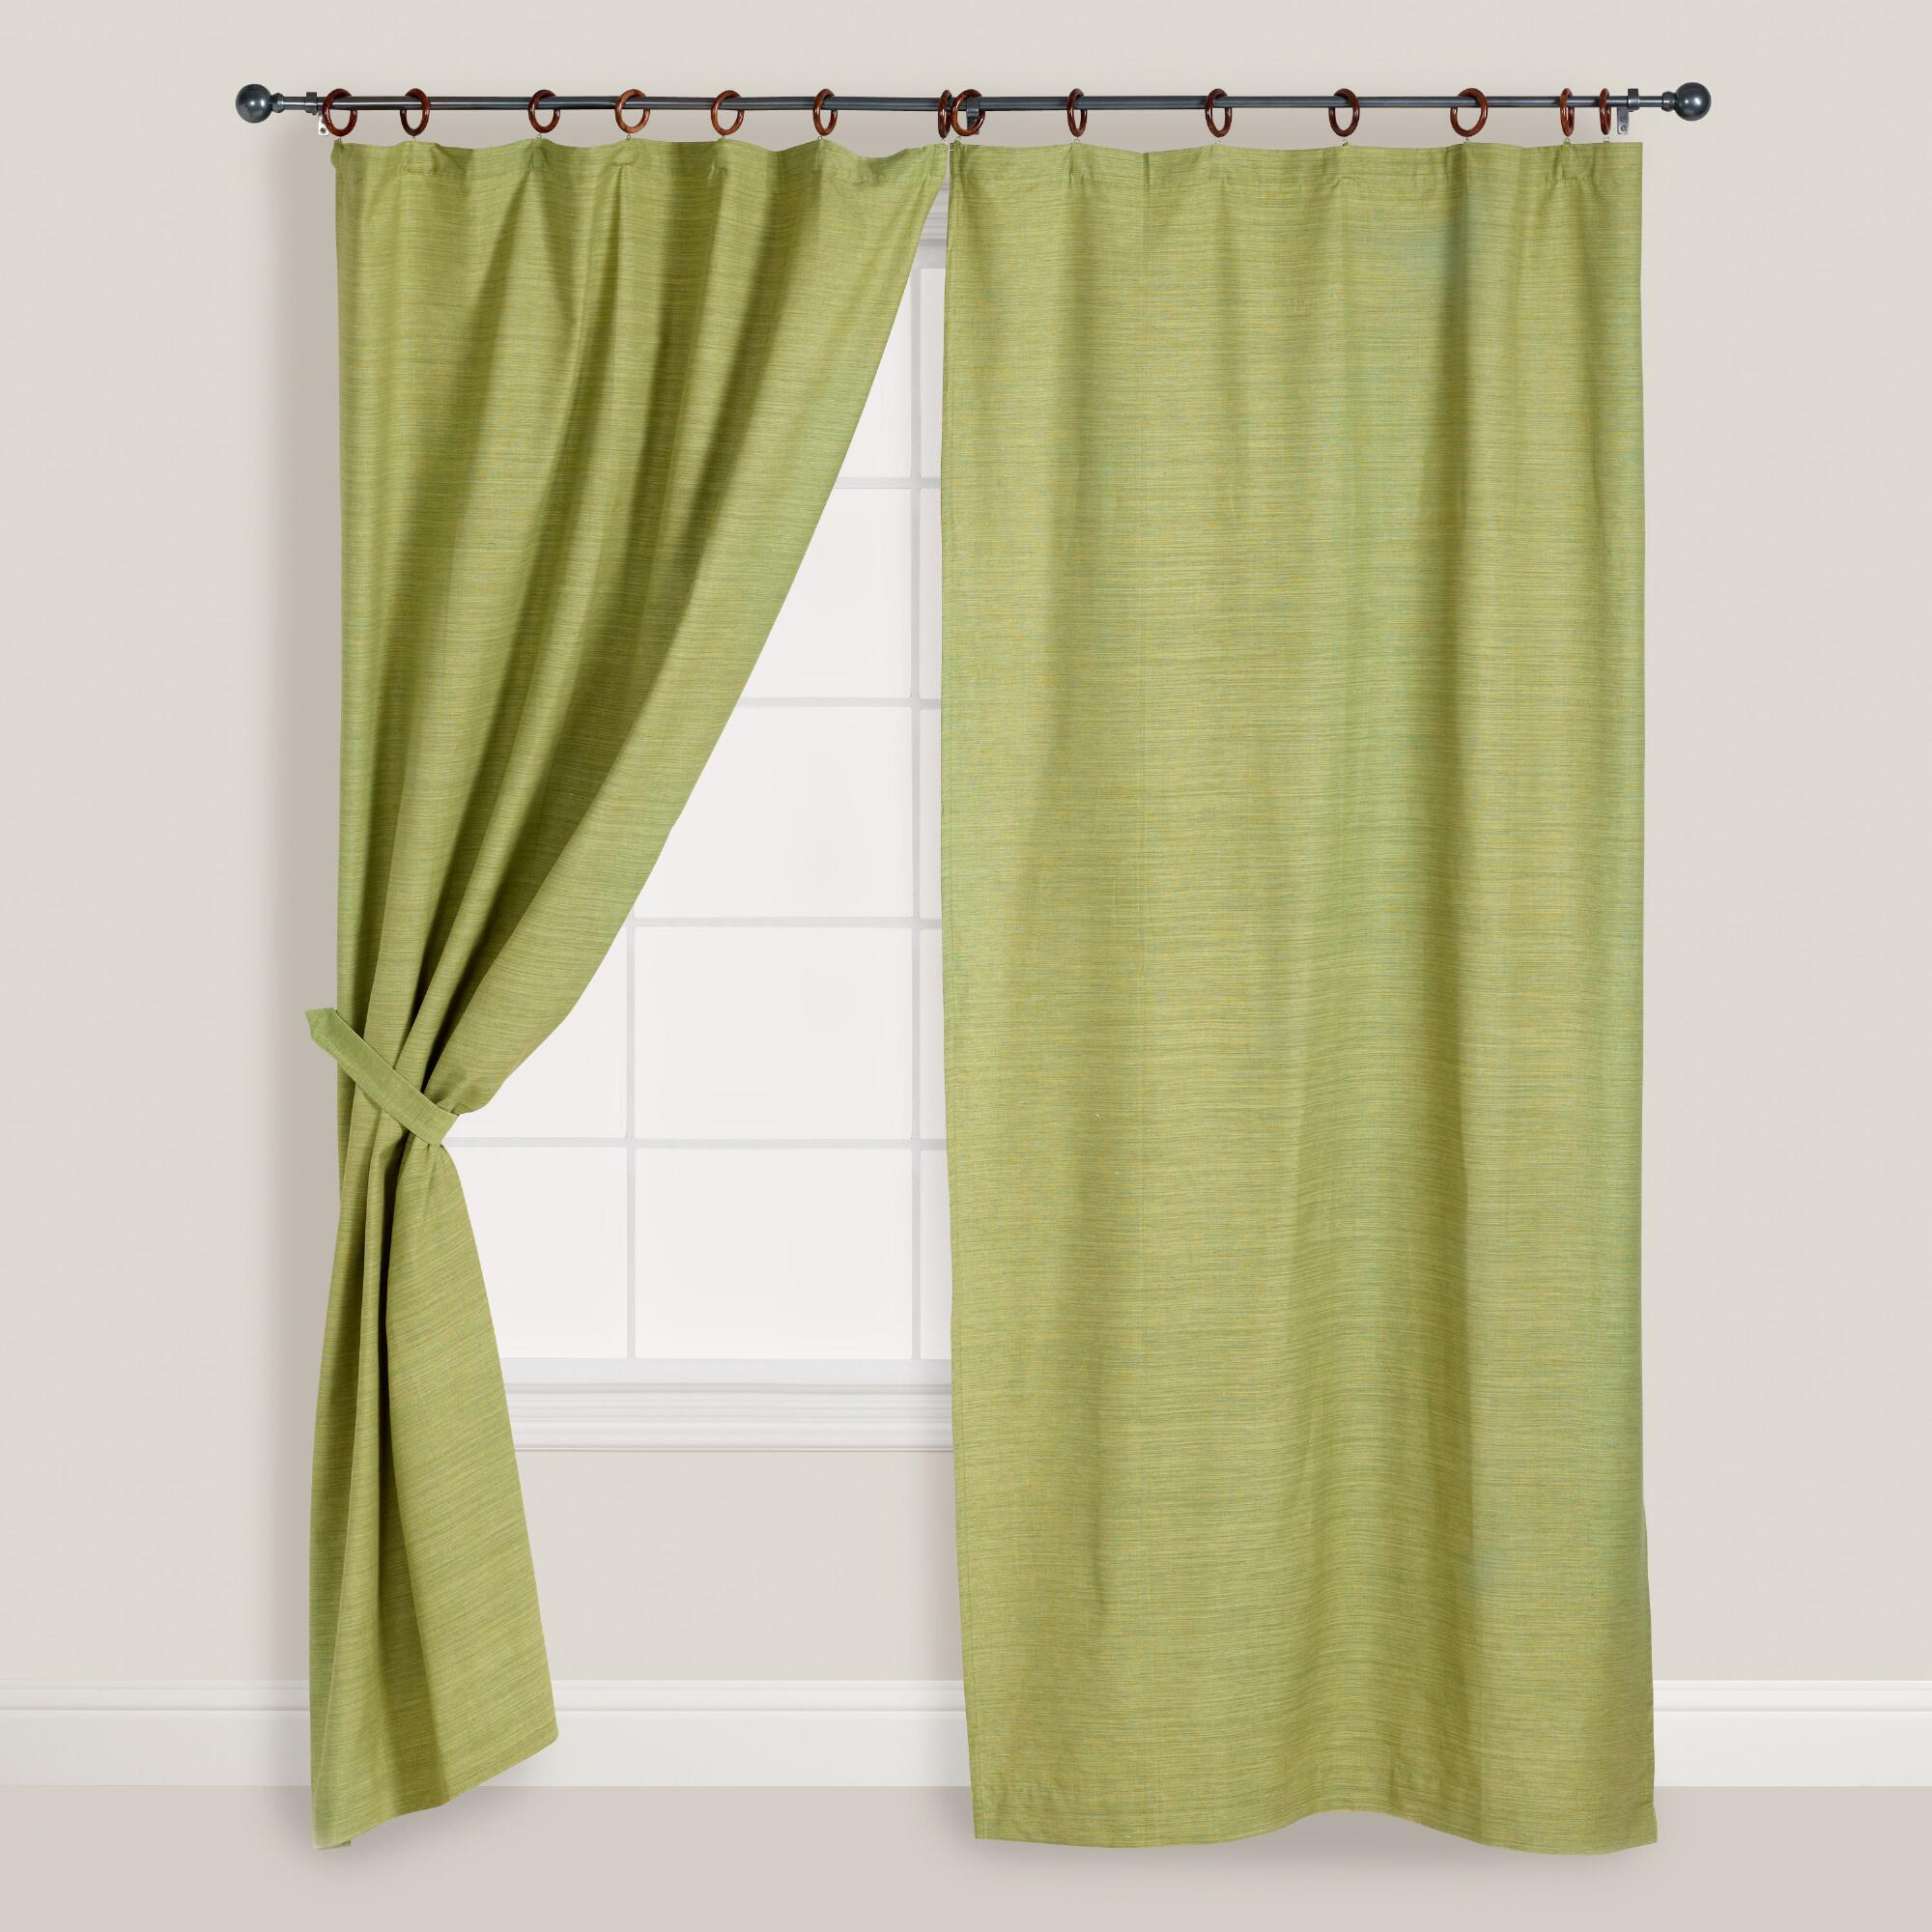 Green jaya canvas curtains set of 2 world market - Images of curtains ...